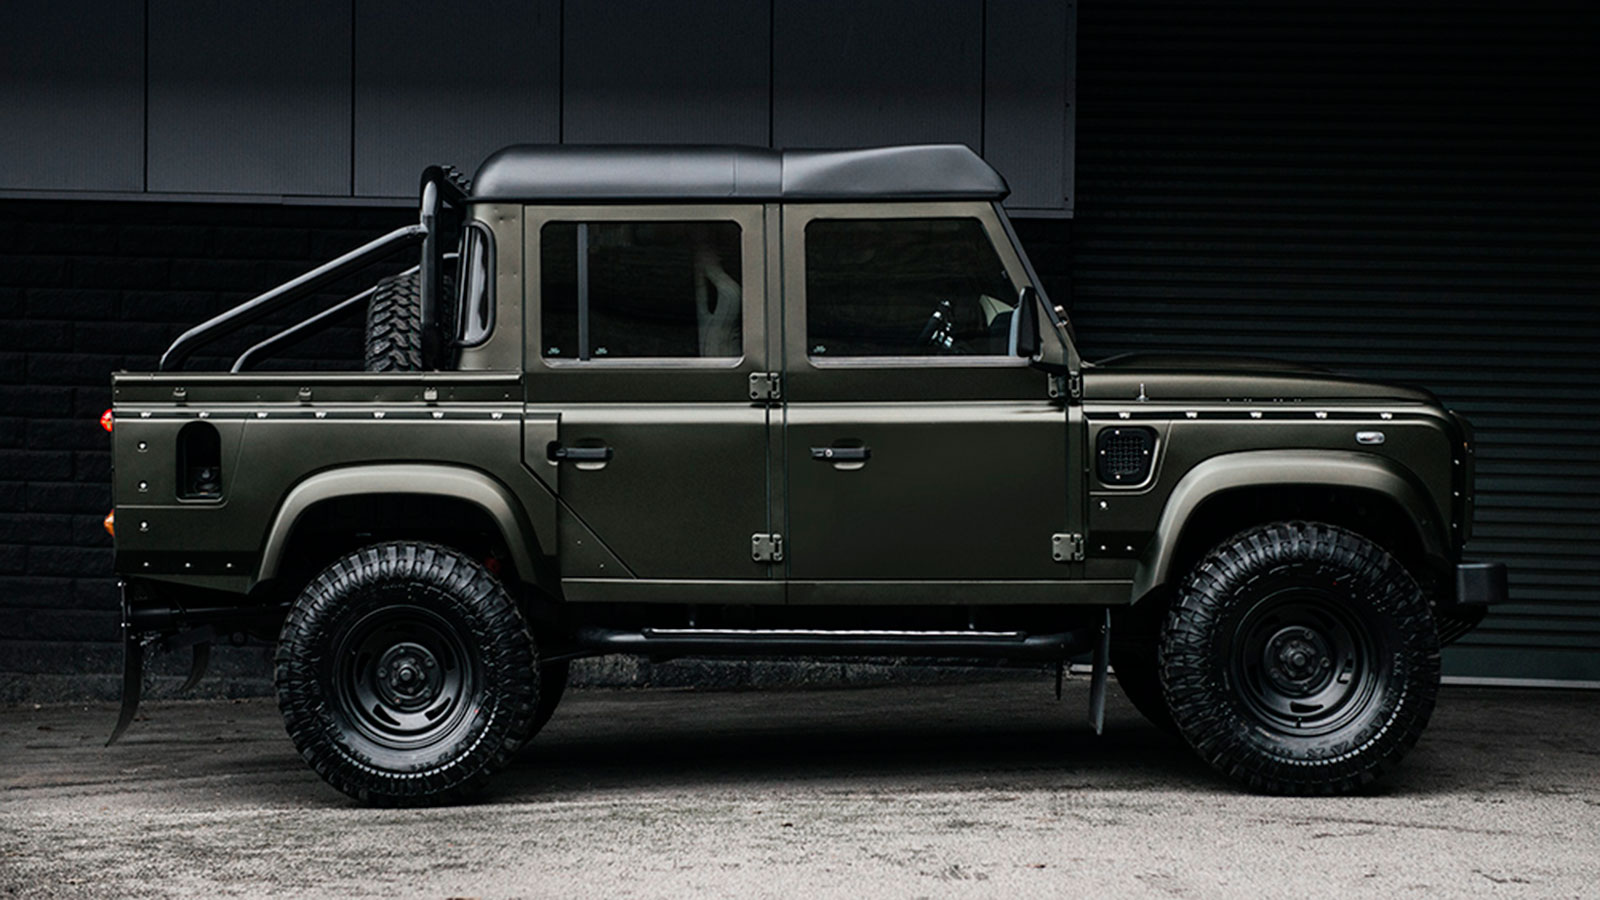 LAND ROVER DEFENDER 2.2 TDCI XS 110 BY PROJECT KHAHN